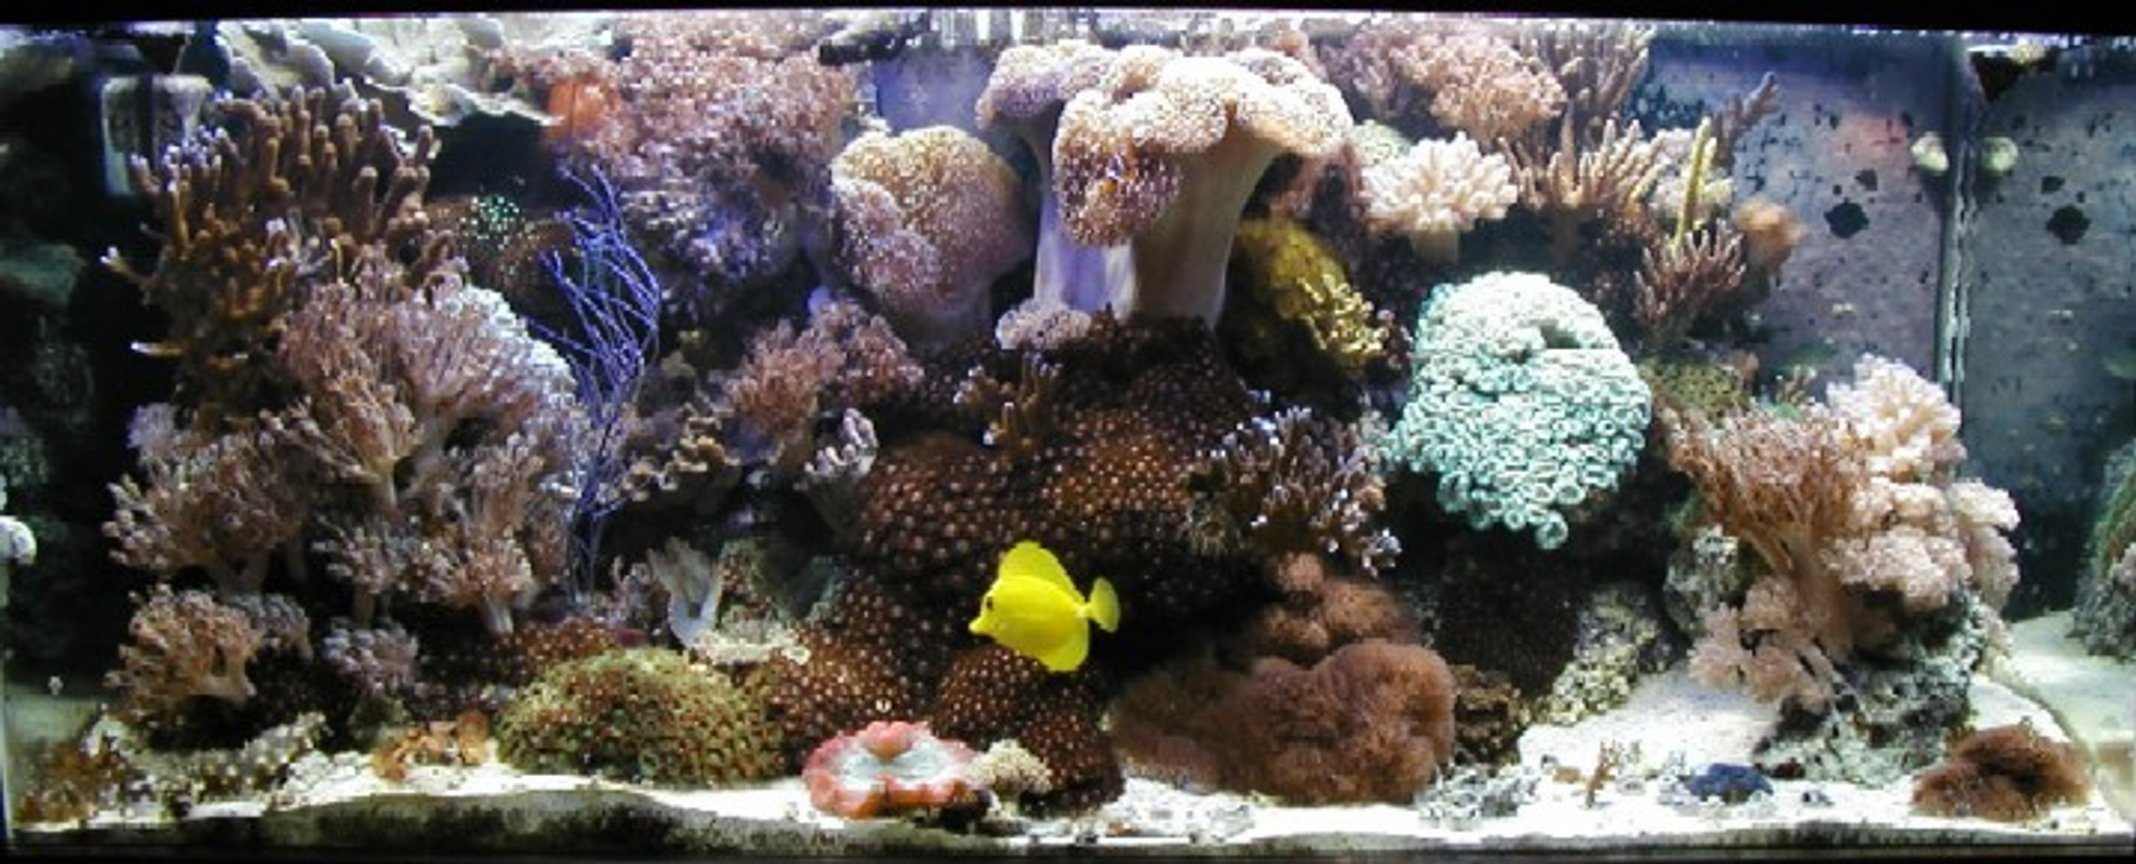 fish tank picture - 80g Reef with center overflow and Eco-system filtration, 2-250w Iwasaki MH and 2-110w VHO Actinic. Auto topoff